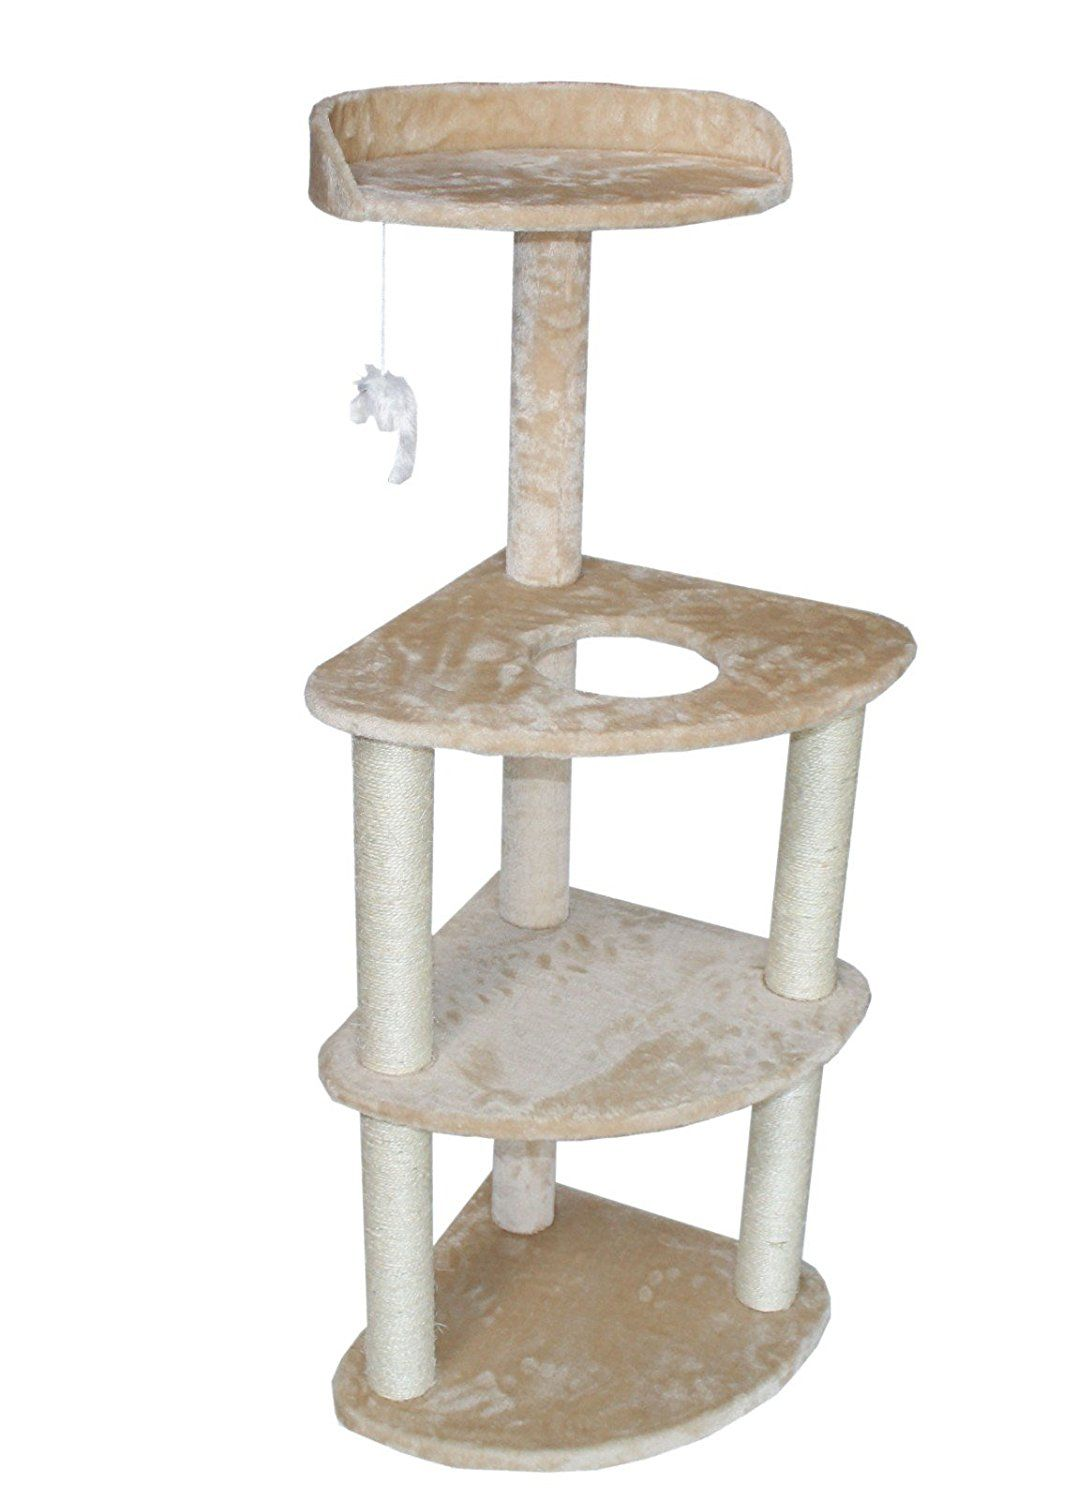 Nice Cat Tree Tower Condo Furniture Scratch Post Kitty Pet House Play  Furniture Muli Level Sisal Pole (Beige) By HIDING U003eu003eu003e Discover This Special  Cat ...